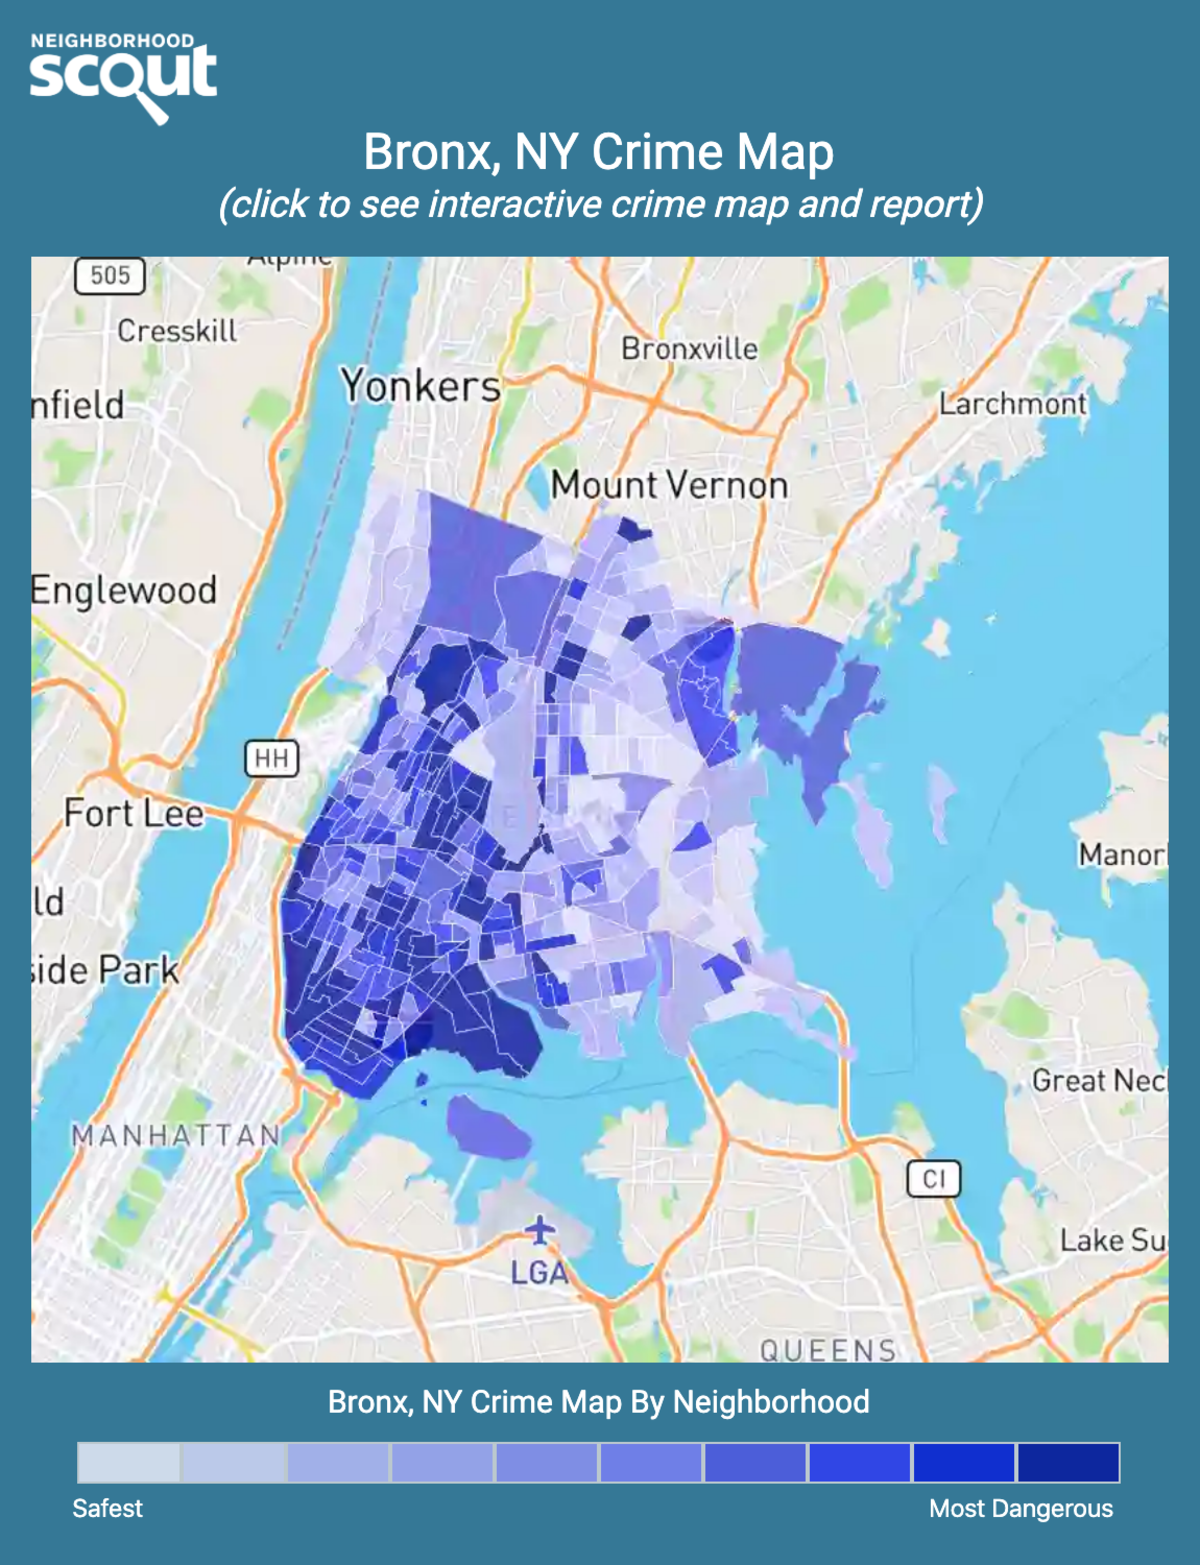 Bronx, New York crime map